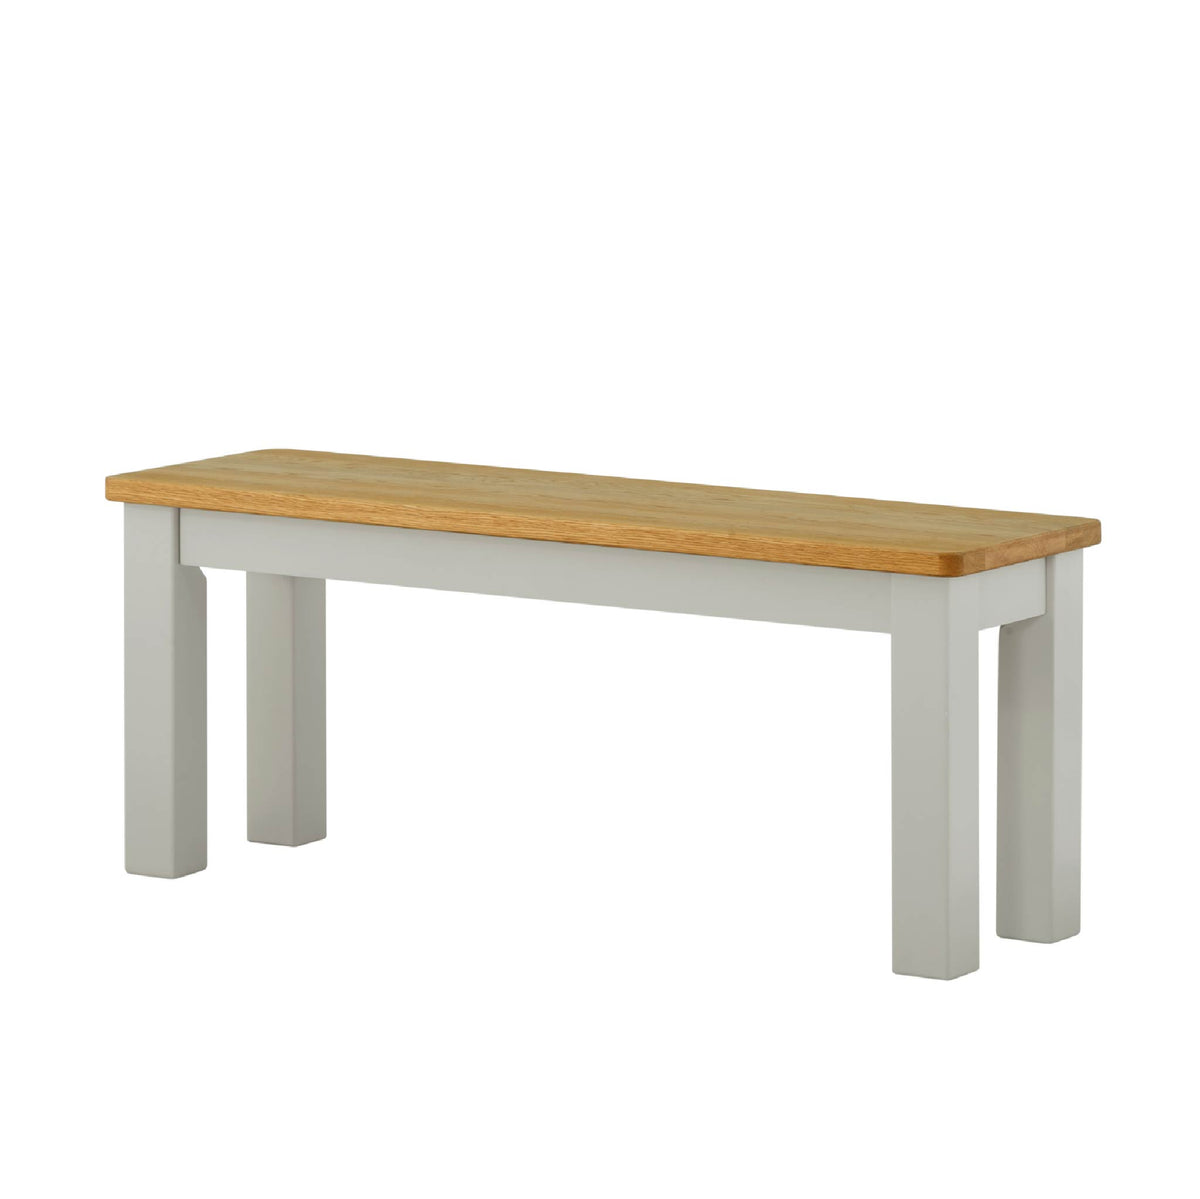 The Padstow Grey Indoor Dining Bench